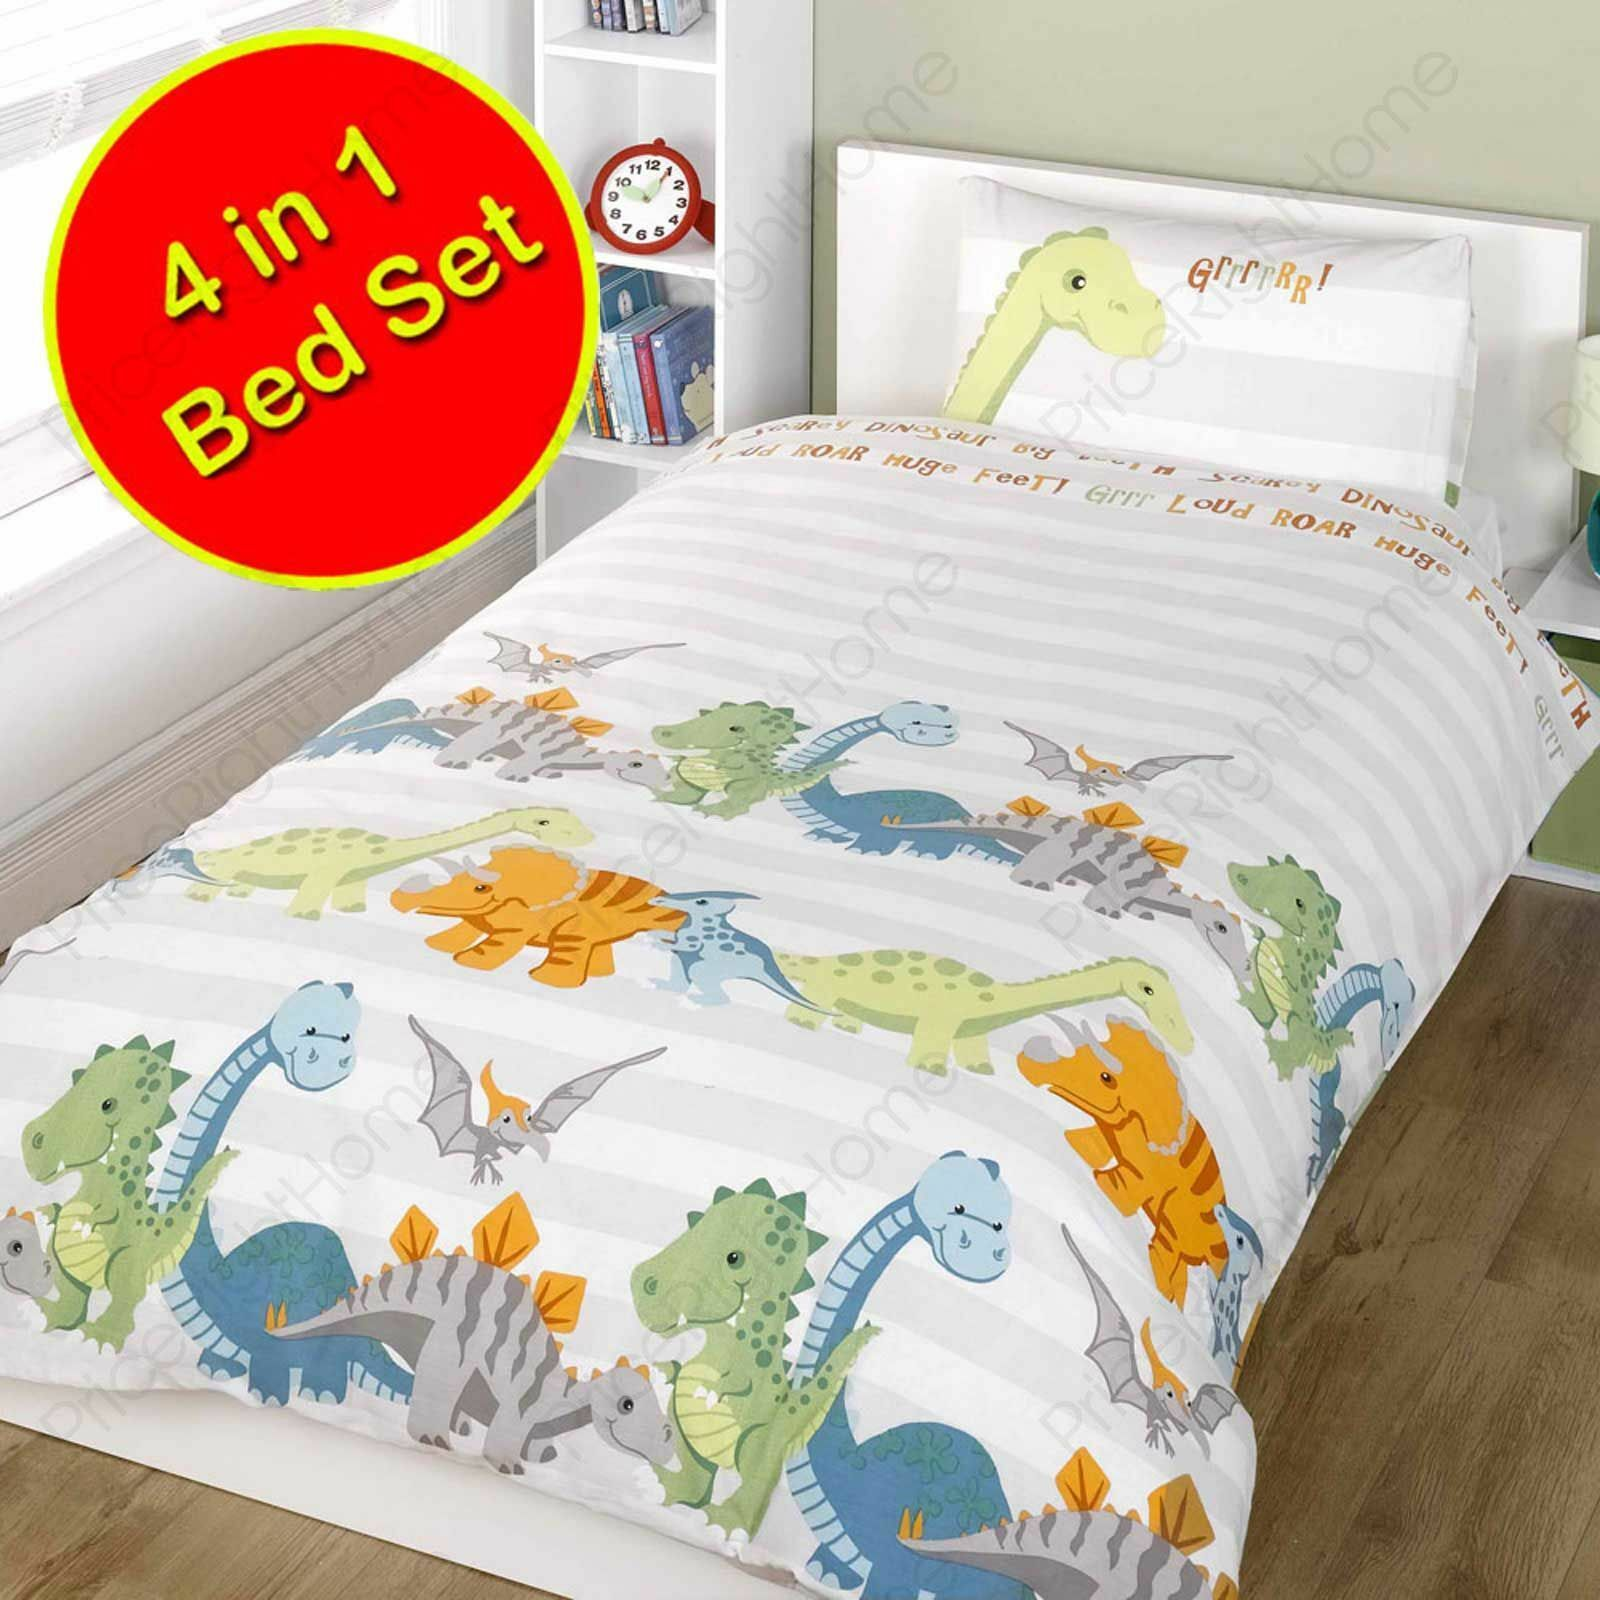 DINOSAURS NATURAL 4 in 1 JUNIOR BEDDING BUNDLE DUVET COVER SET TODDLER